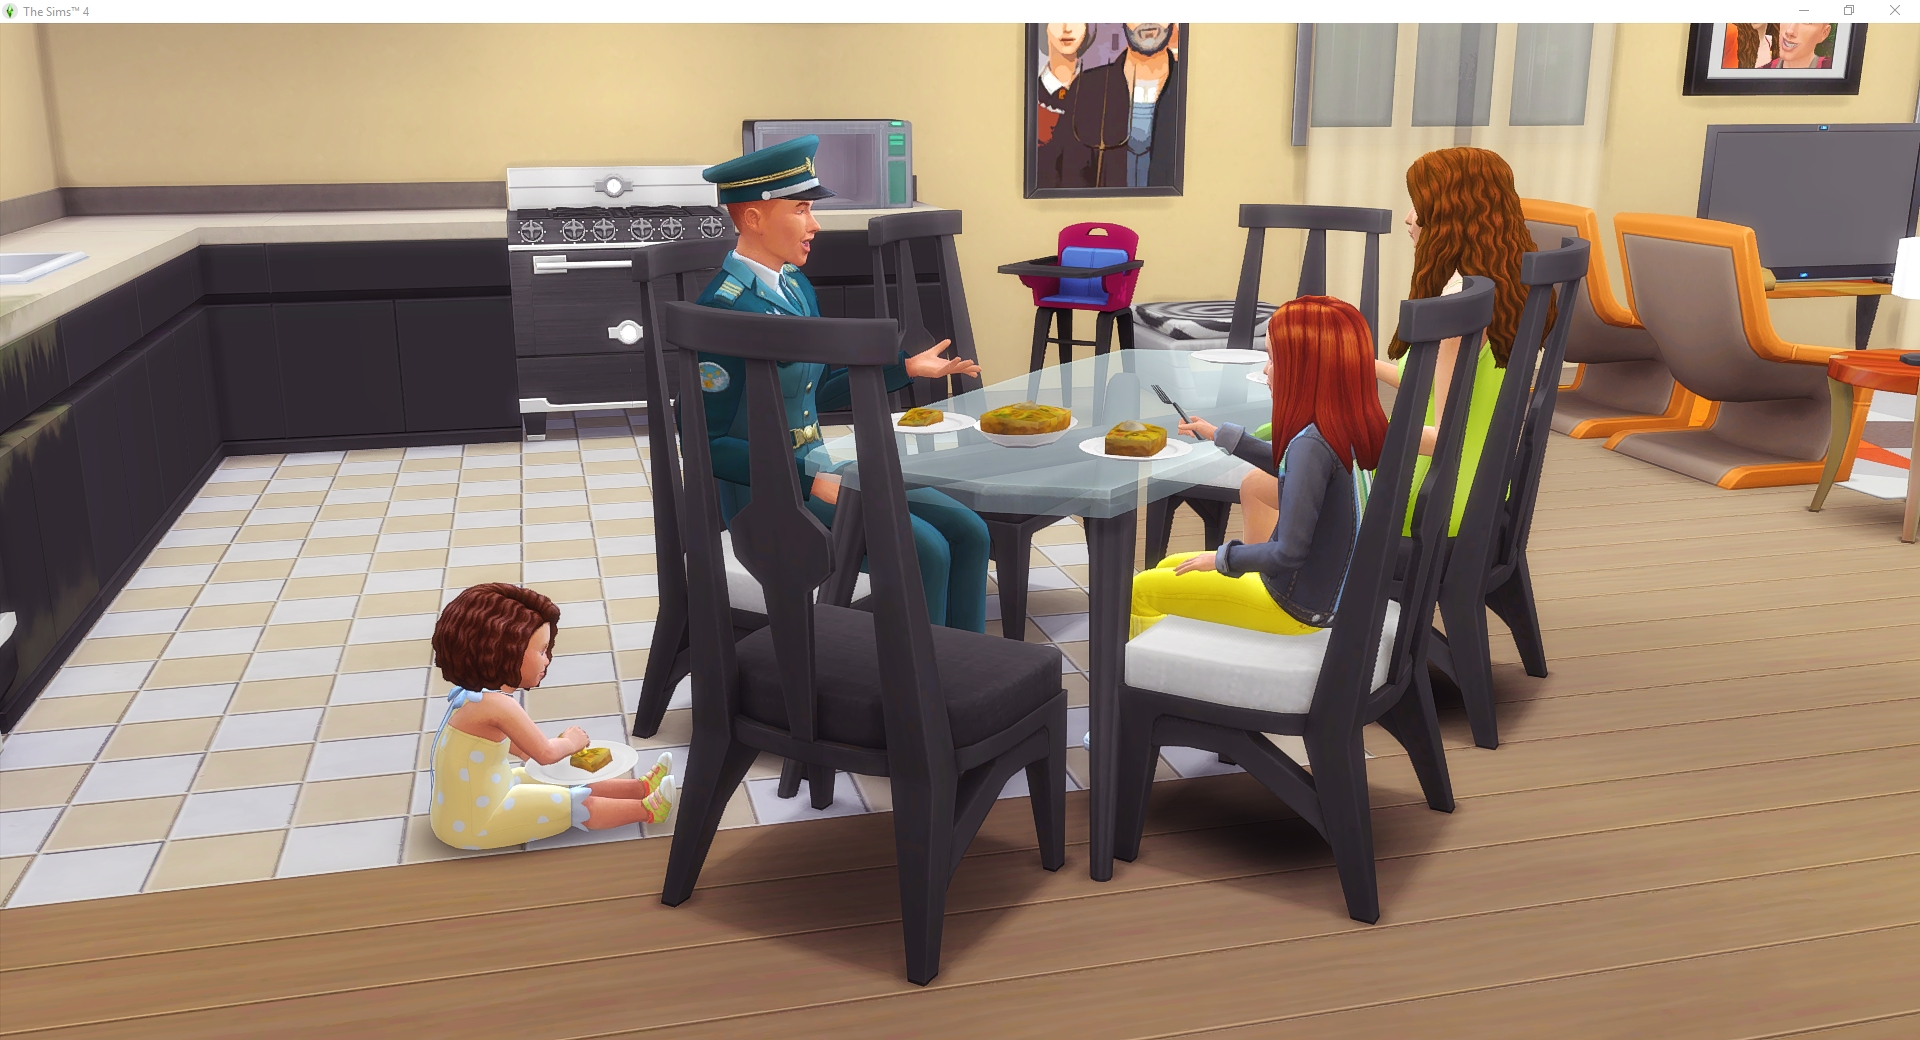 Masterful Sims: Time for the Children